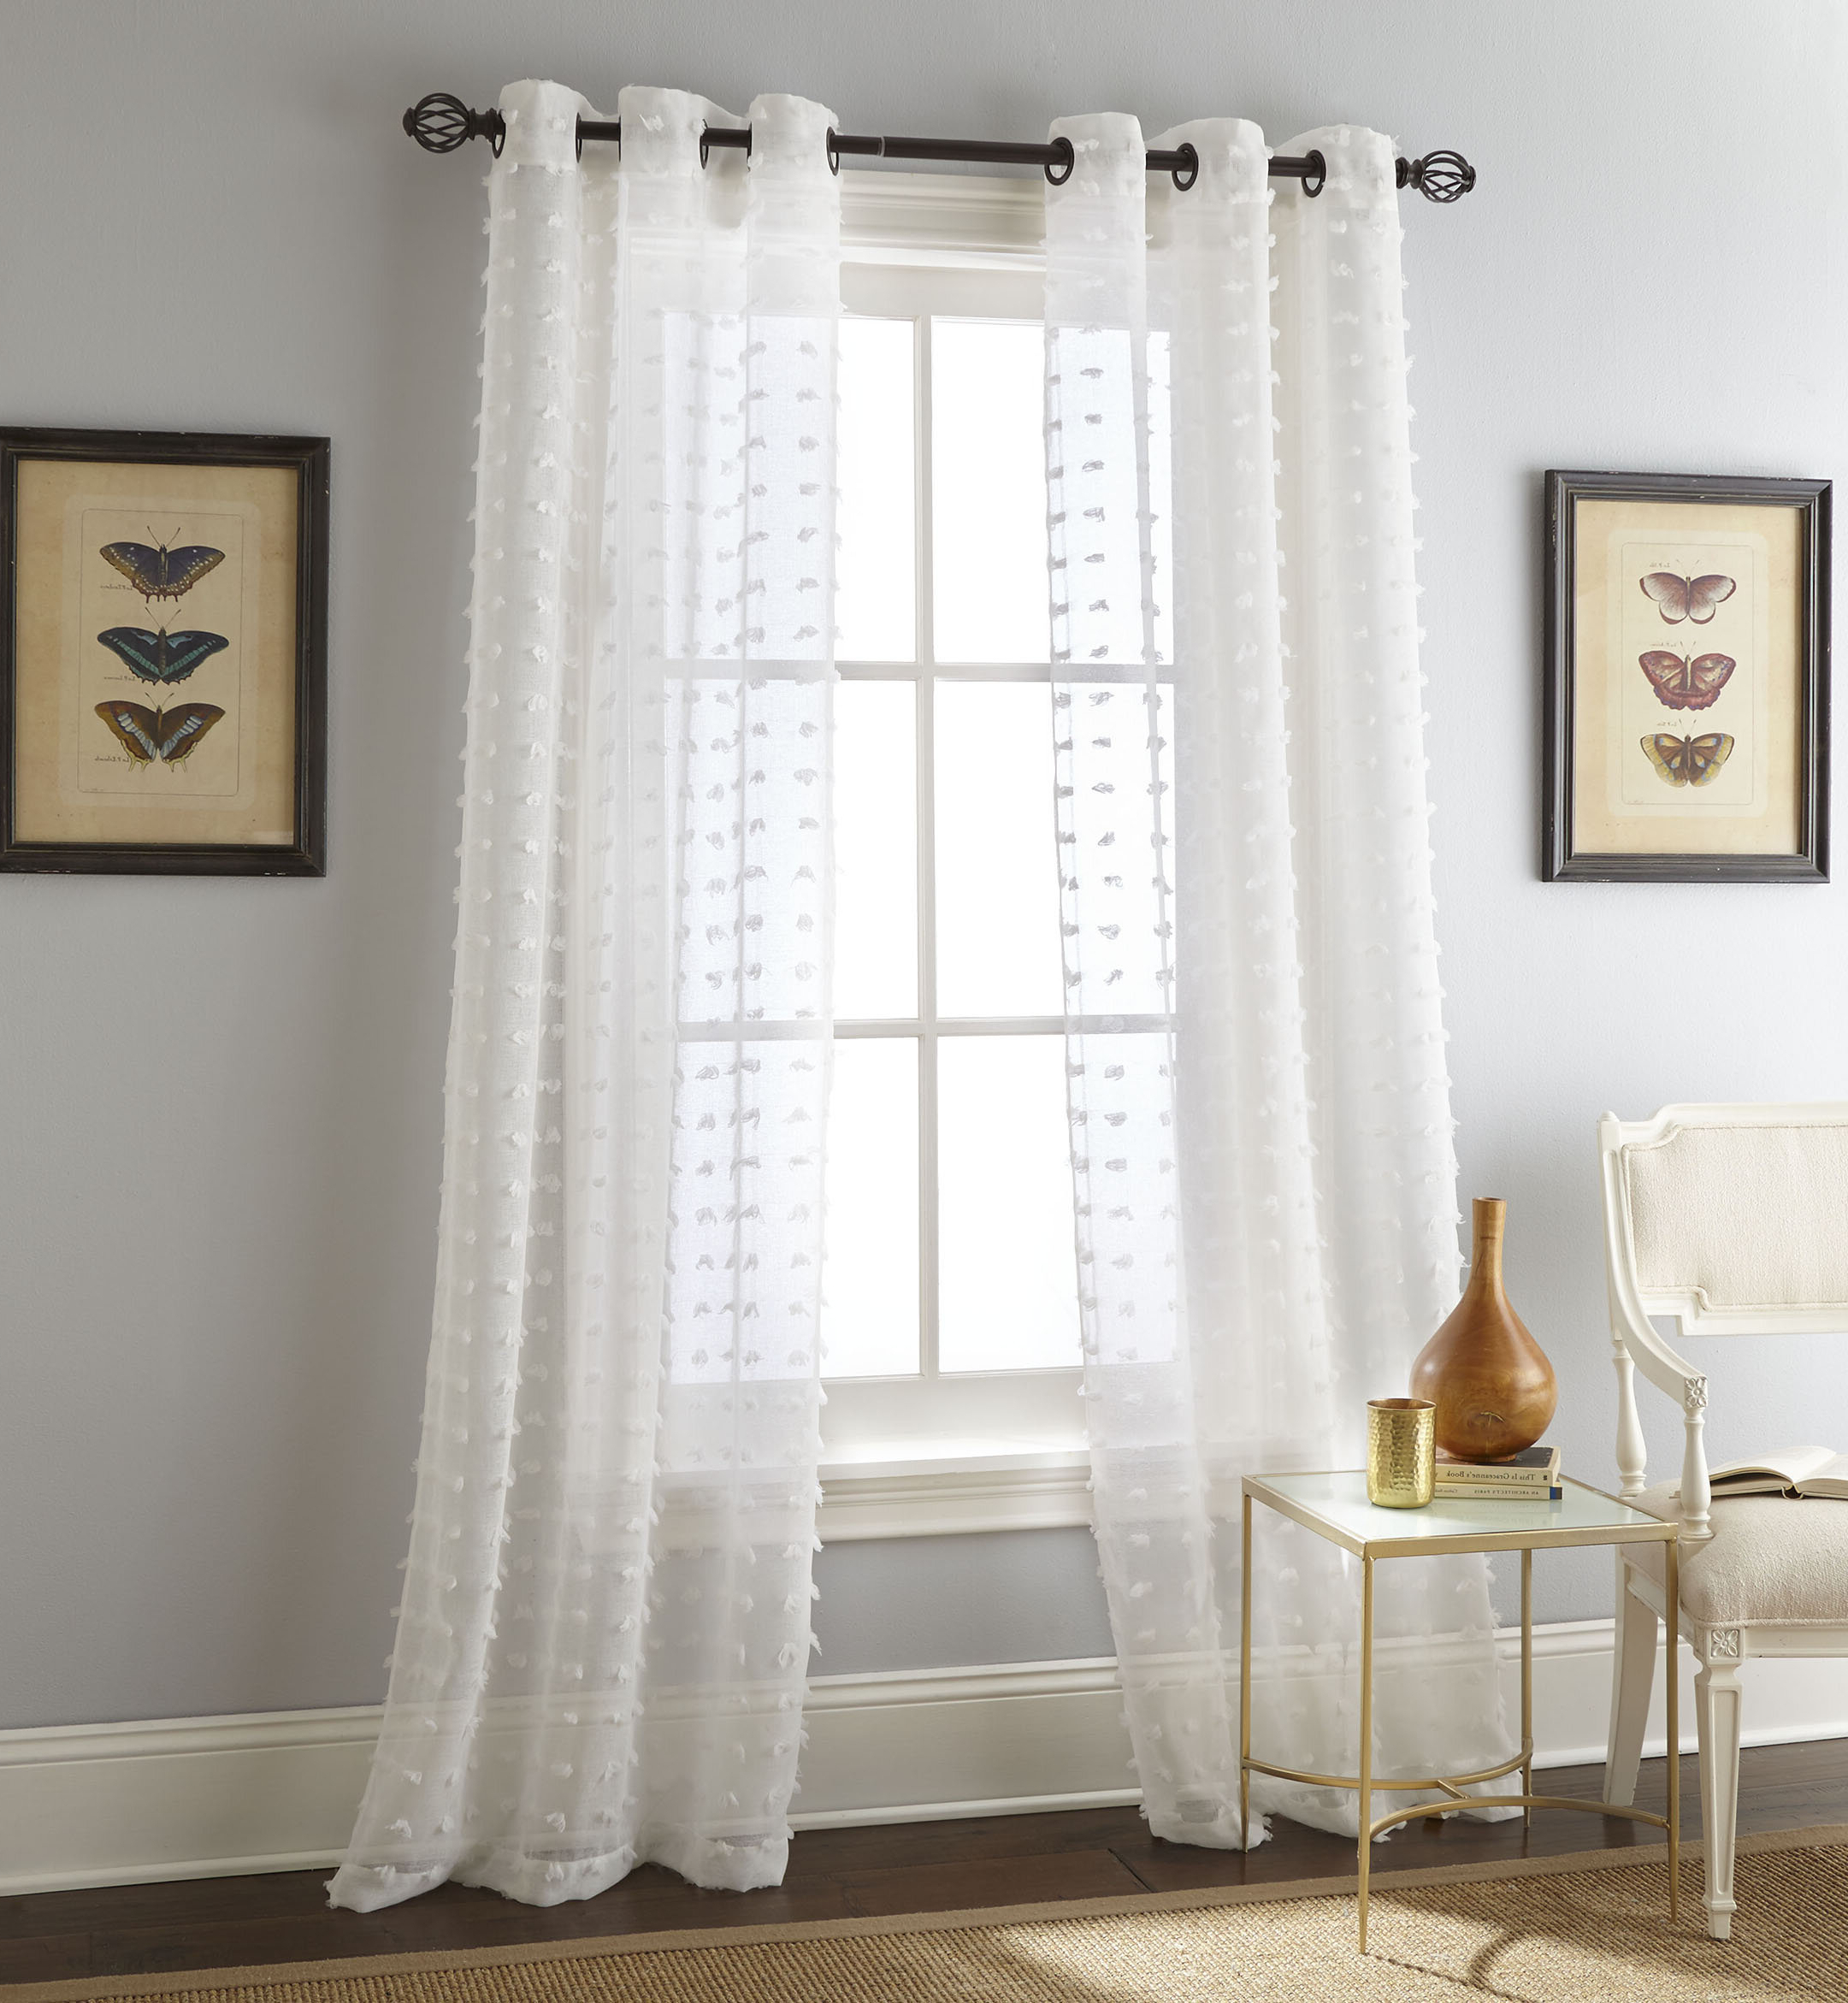 Payton Solid Color Semi Sheer Grommet Curtain Panels With Best And Newest Ella Window Curtain Panels (View 18 of 20)